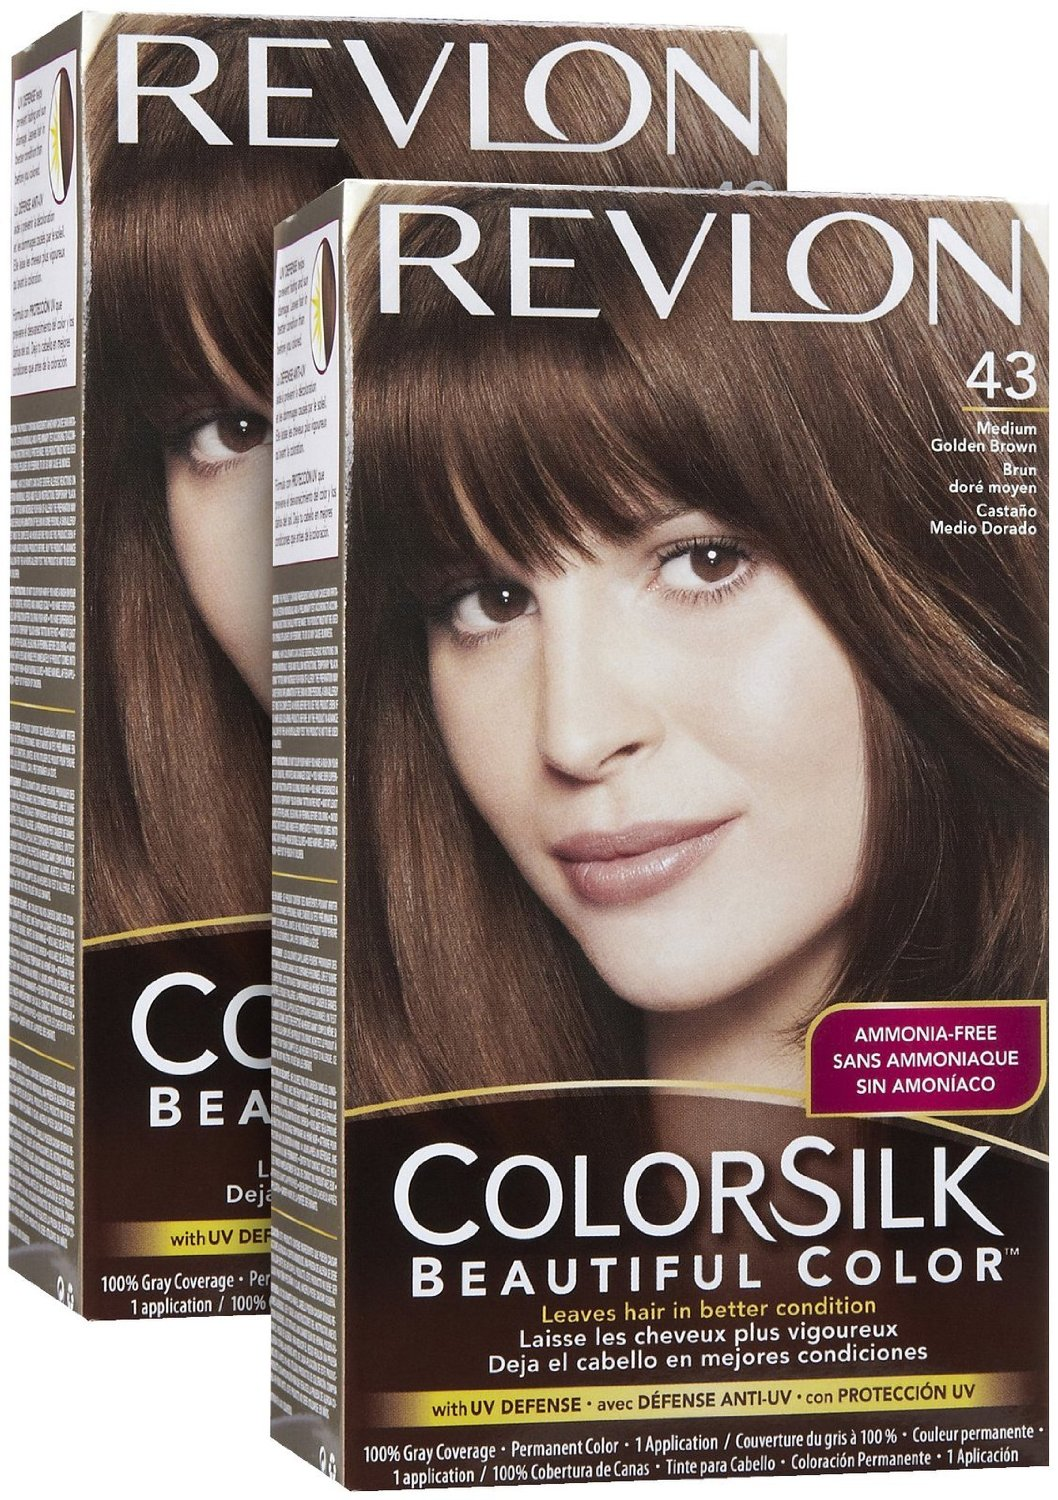 Revlon Colorsilk With Uv Defense Hair Dye Review